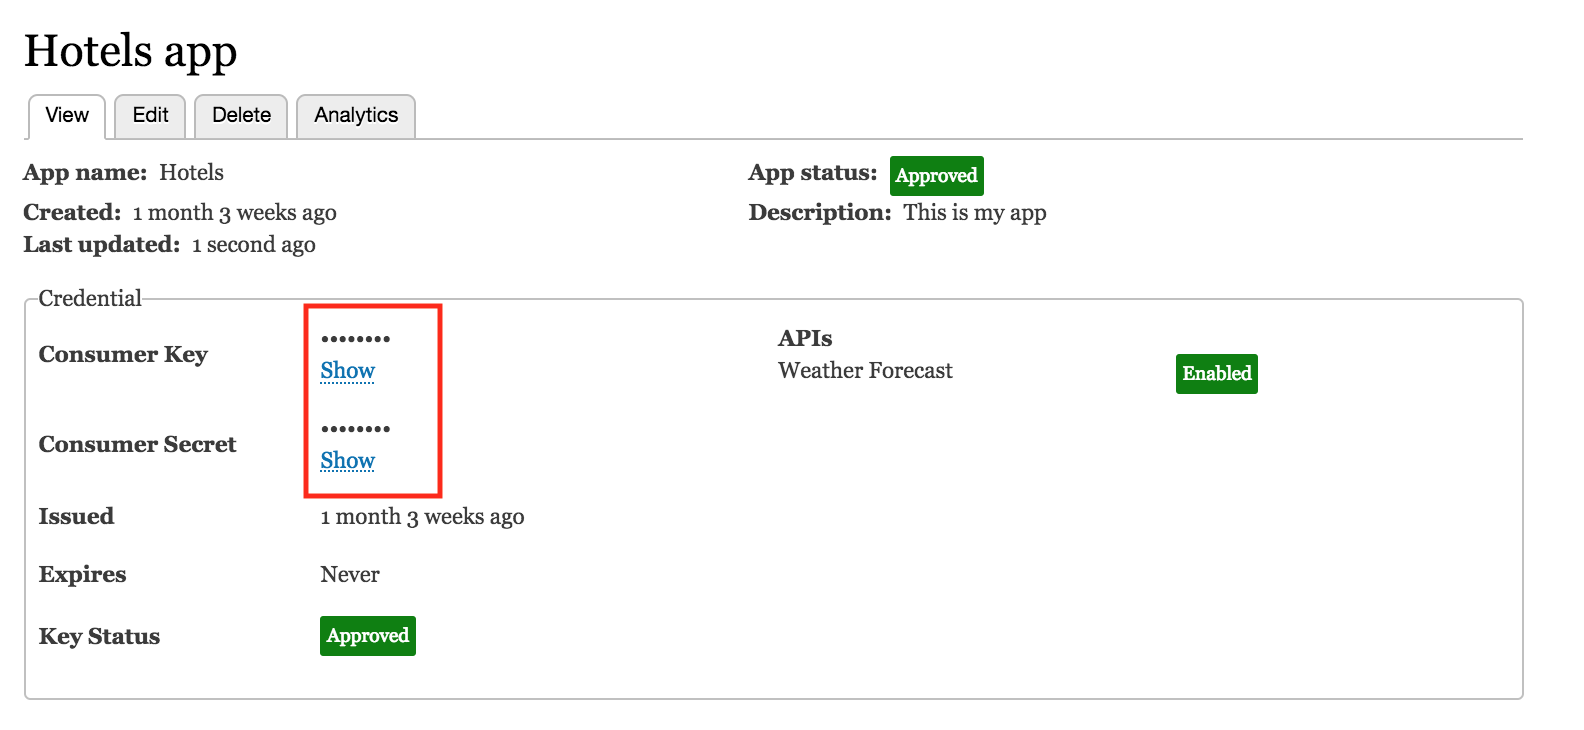 Understand how app developers interact with the Apigee Edge